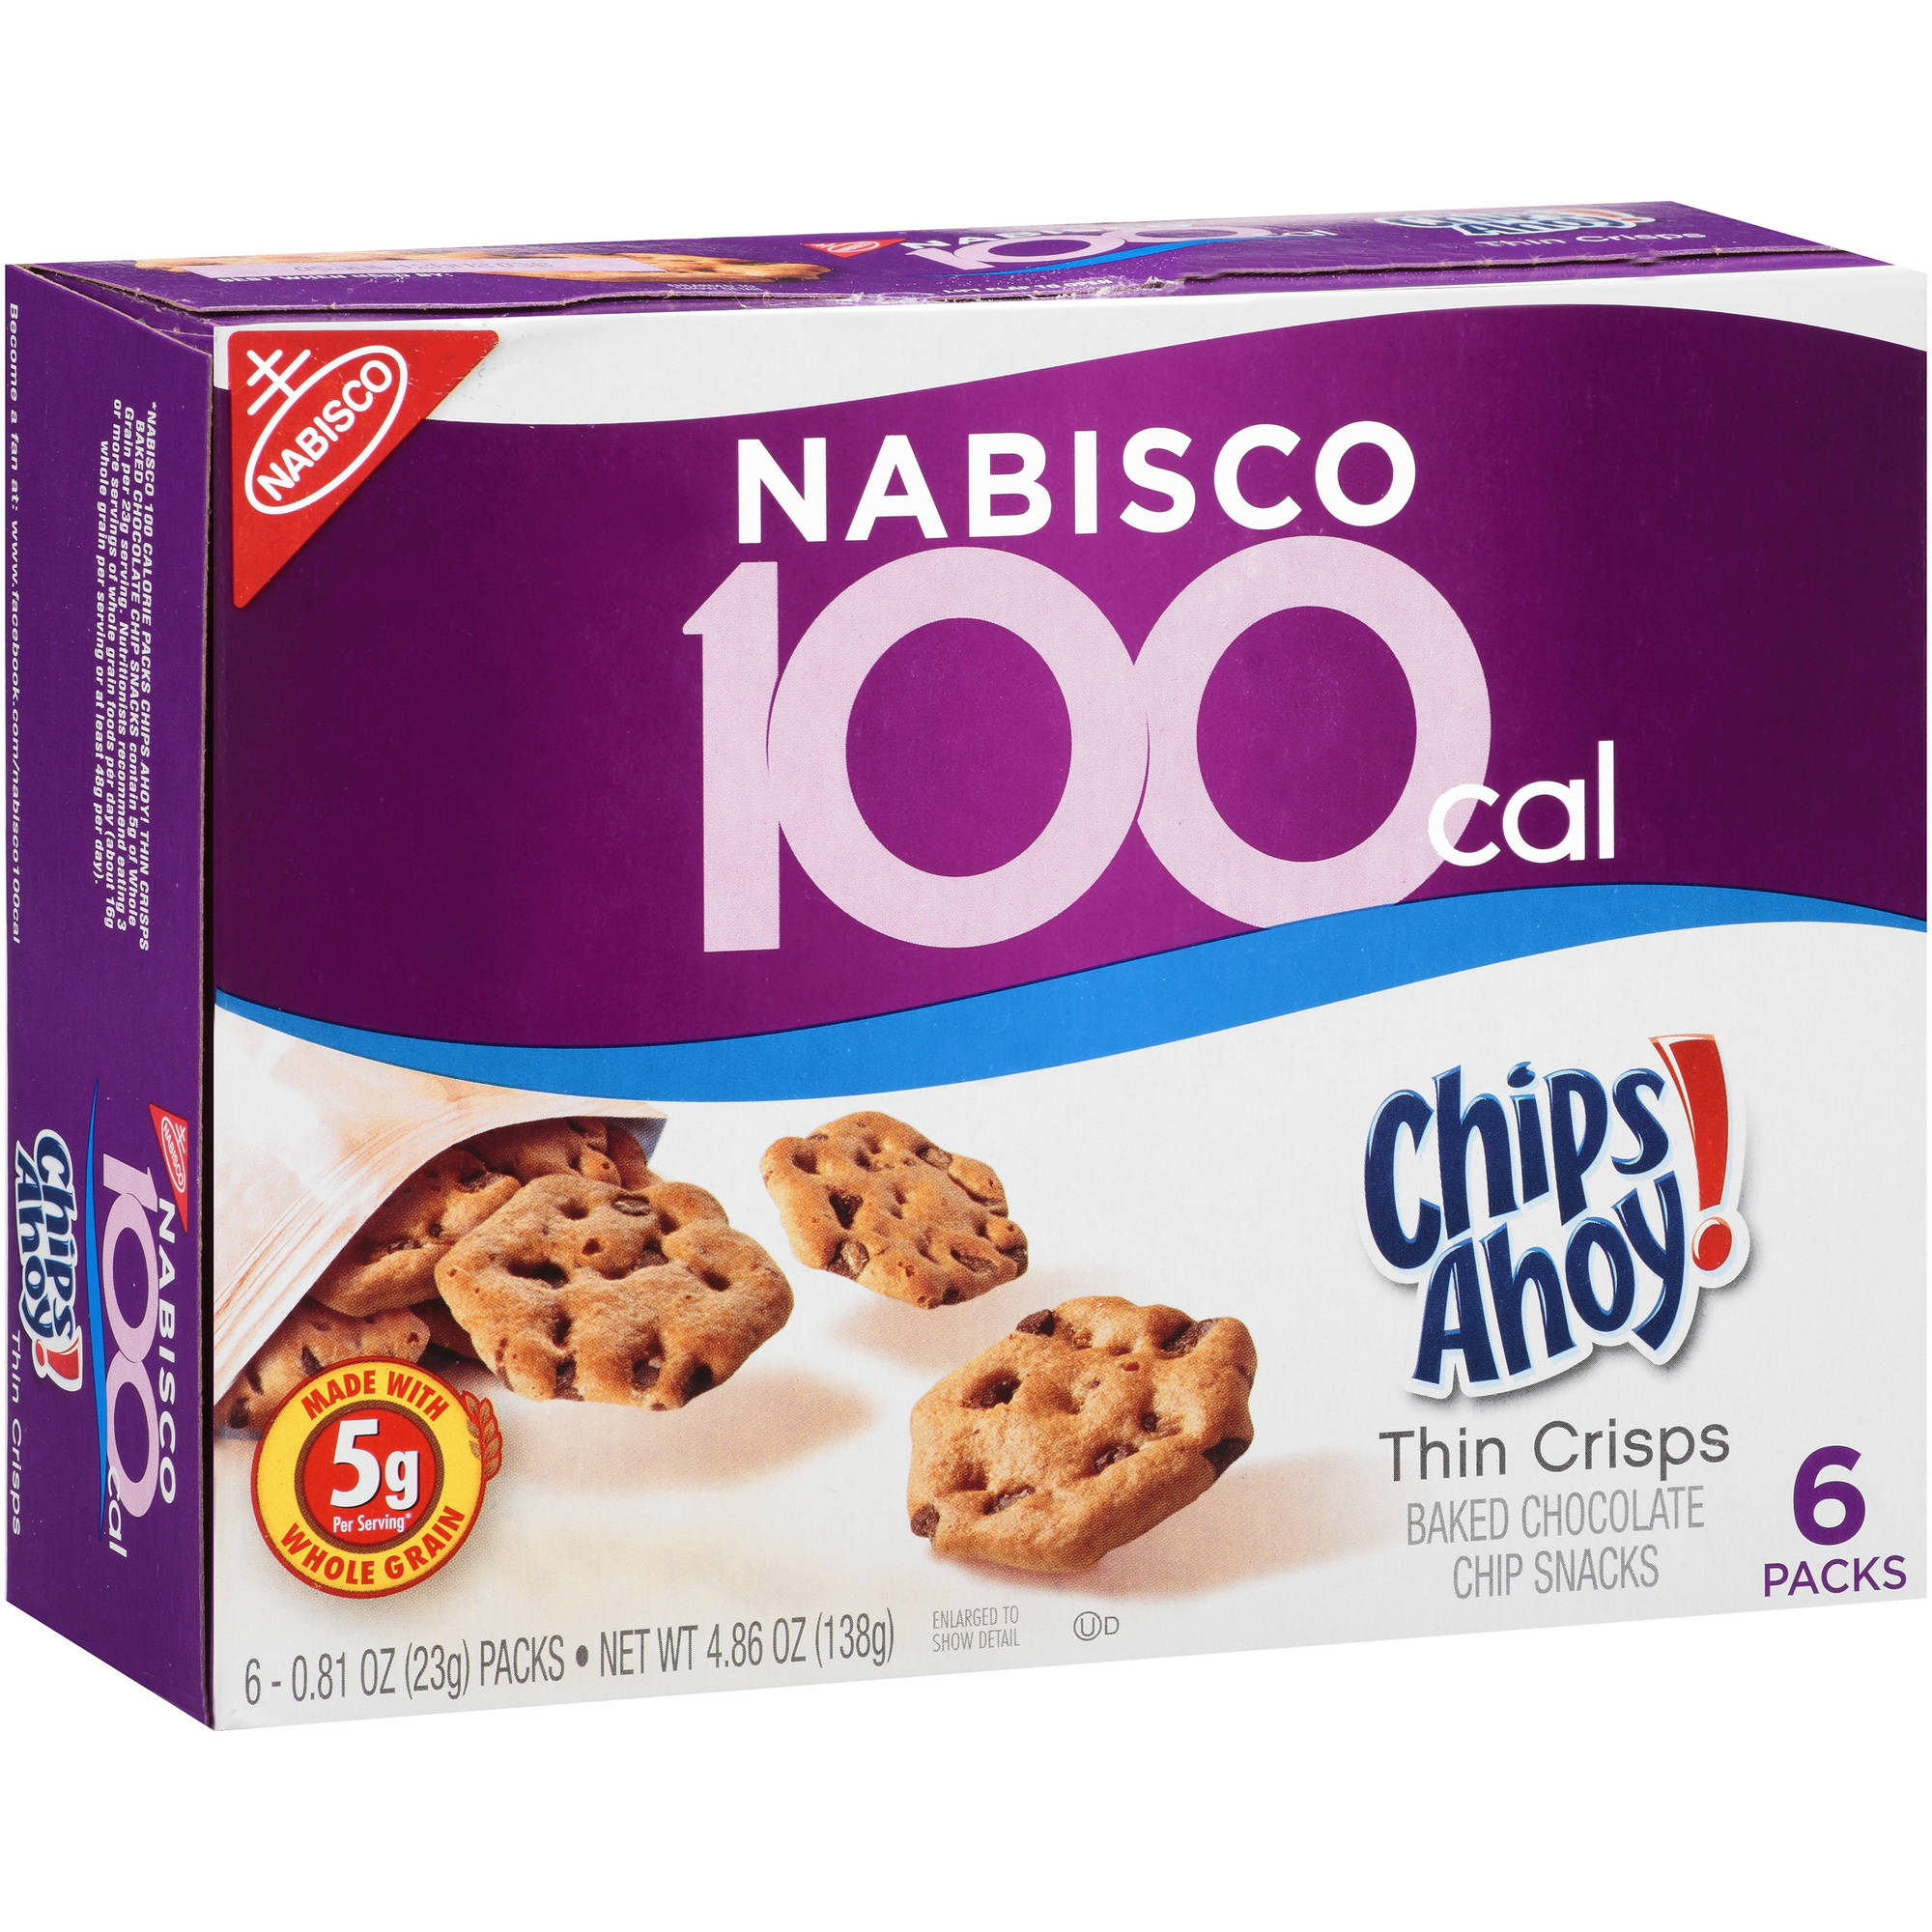 Nabisco 100 Calorie Chips Ahoy! Thin Crisps Baked Chocolate Chip Snacks, .81 oz, 6 count